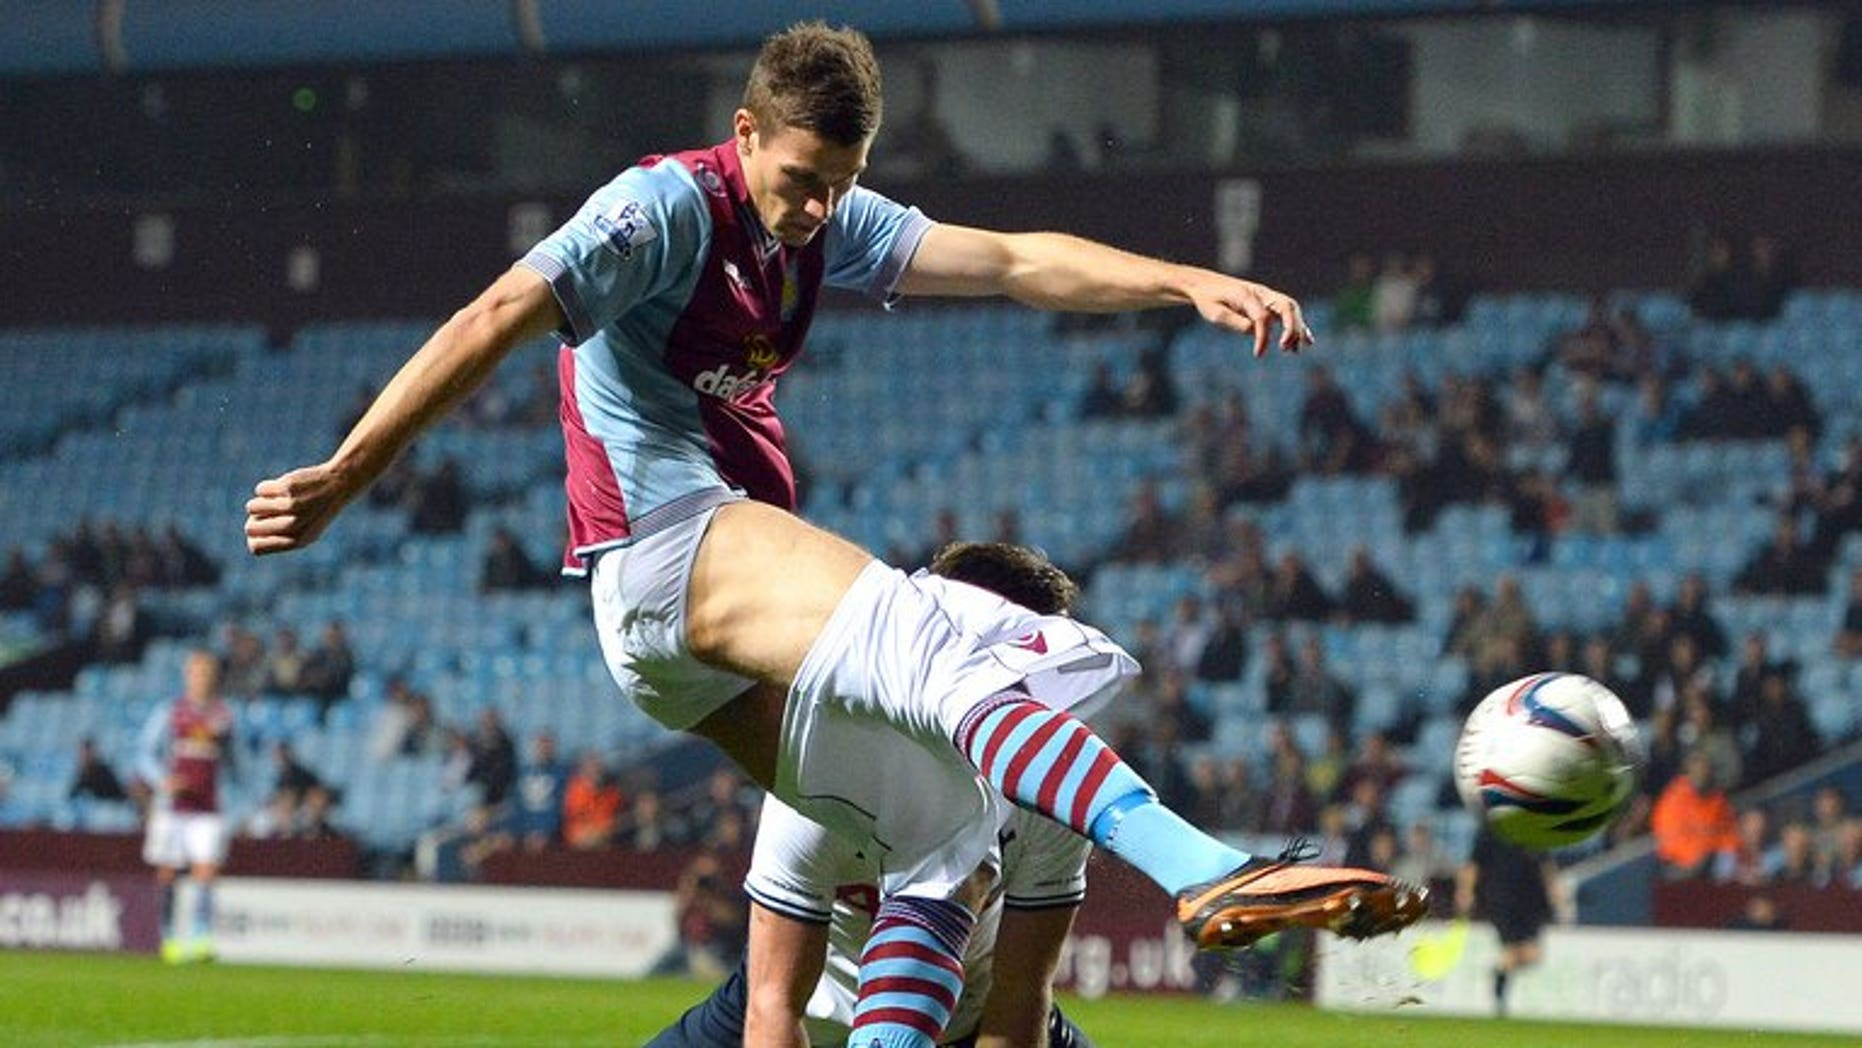 Aston Villa's Danish forward Nicklas Helenius loses his shorts during a challenge from Tottenham Hotspur's Belgian defender Jan Vertonghen at the League Cup football match between Aston Villa and Tottenham Hotspur at Villa Park in Birmingham, West Midlands, on September 24, 2013.